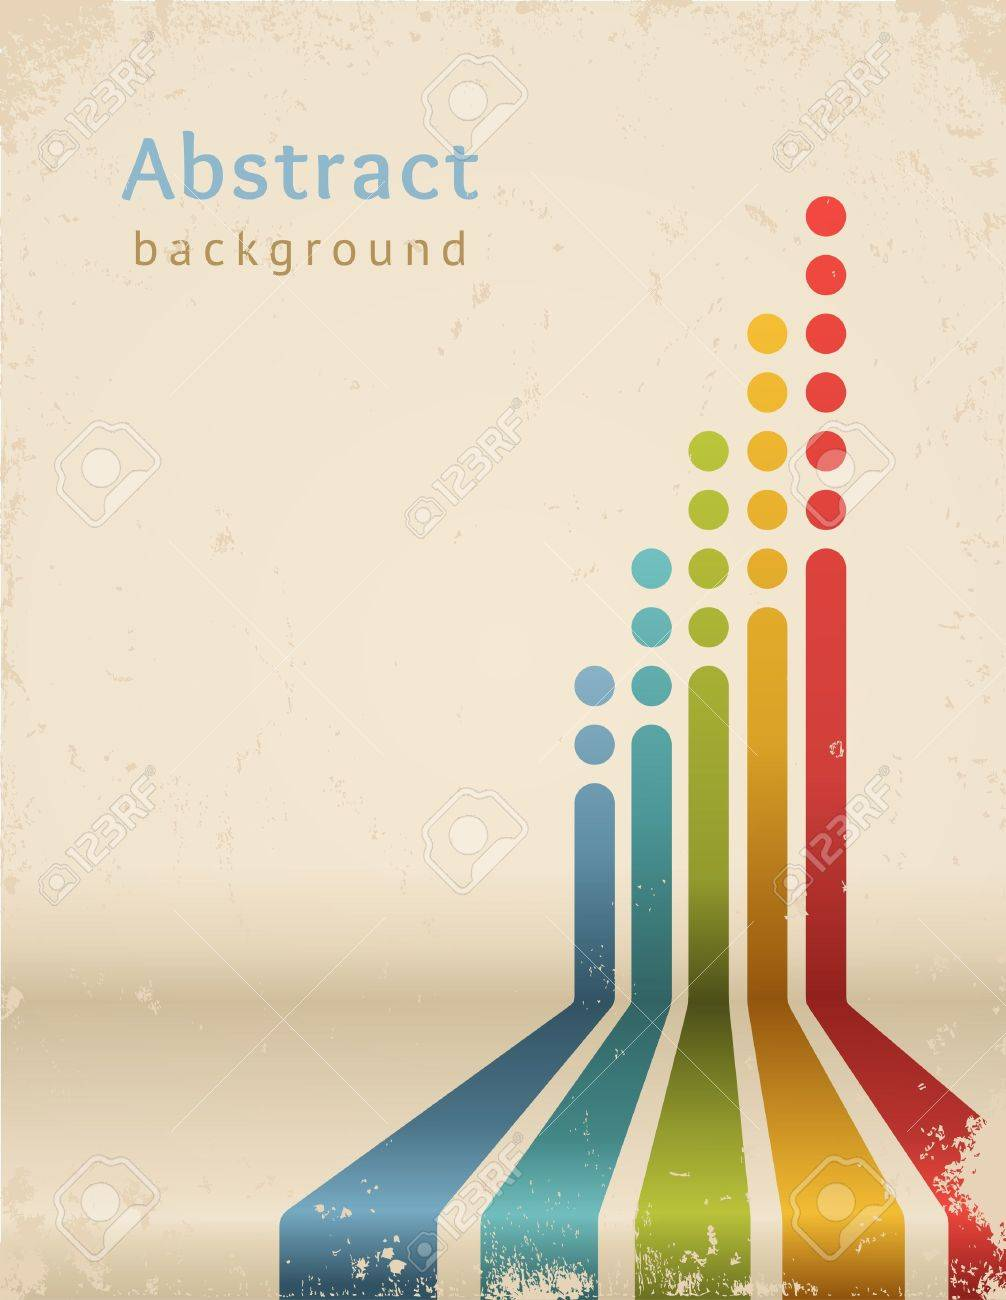 Poster backgrounds design - Poster Template Colored Stripes With Circles Vector Grunge Design Template